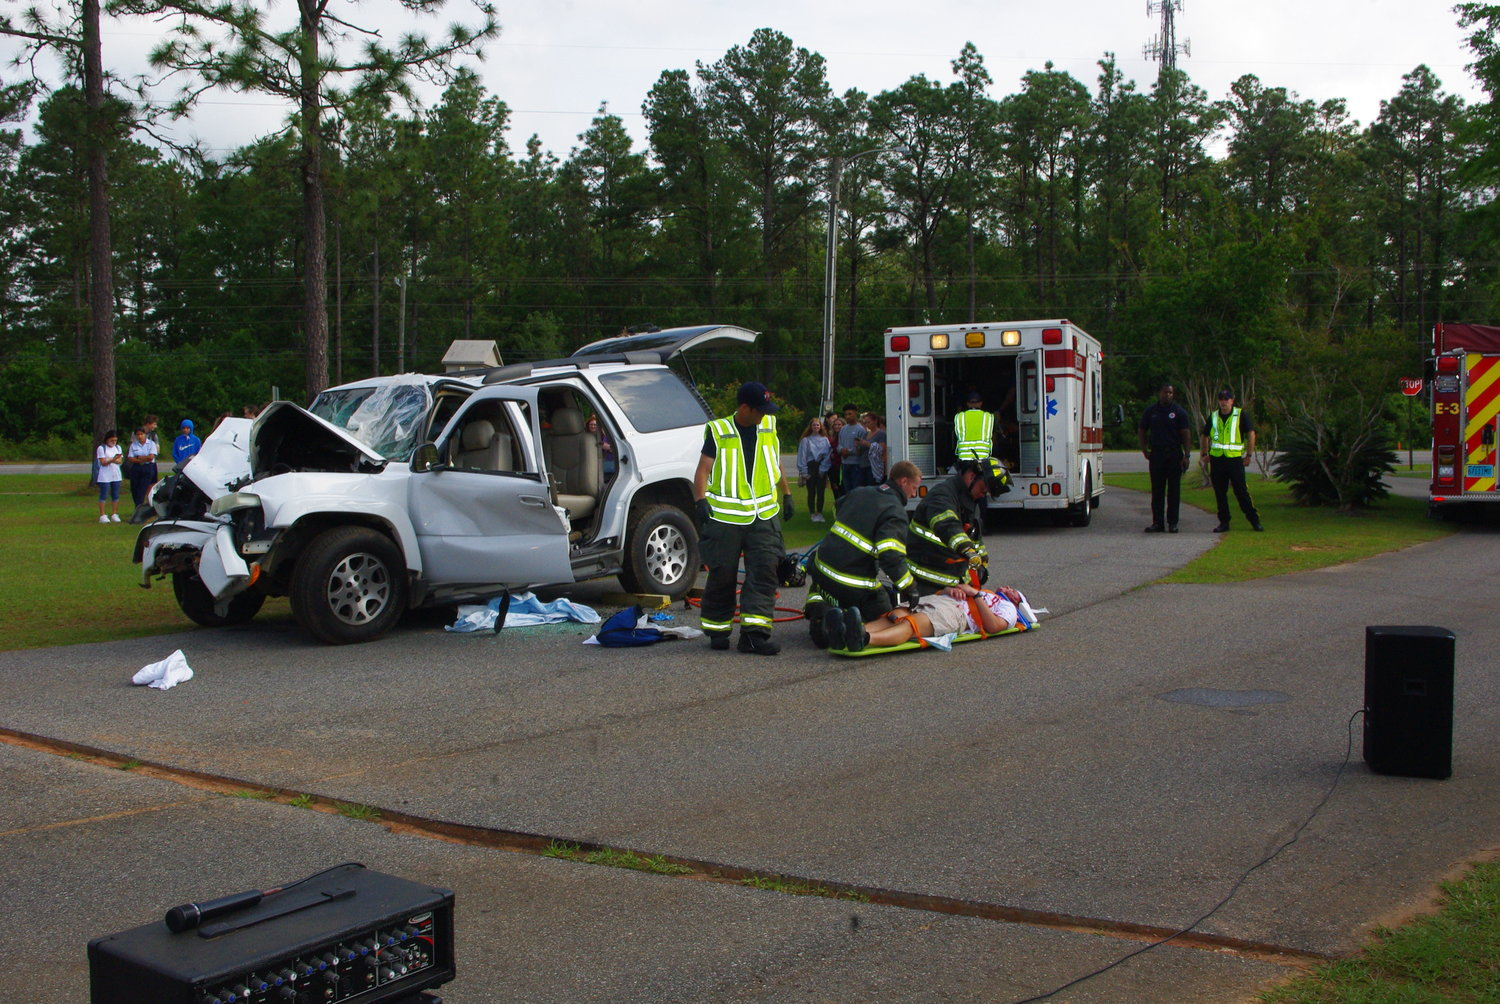 An accident victim removed from a wrecked vehicle waits to be loaded into an ambulance.